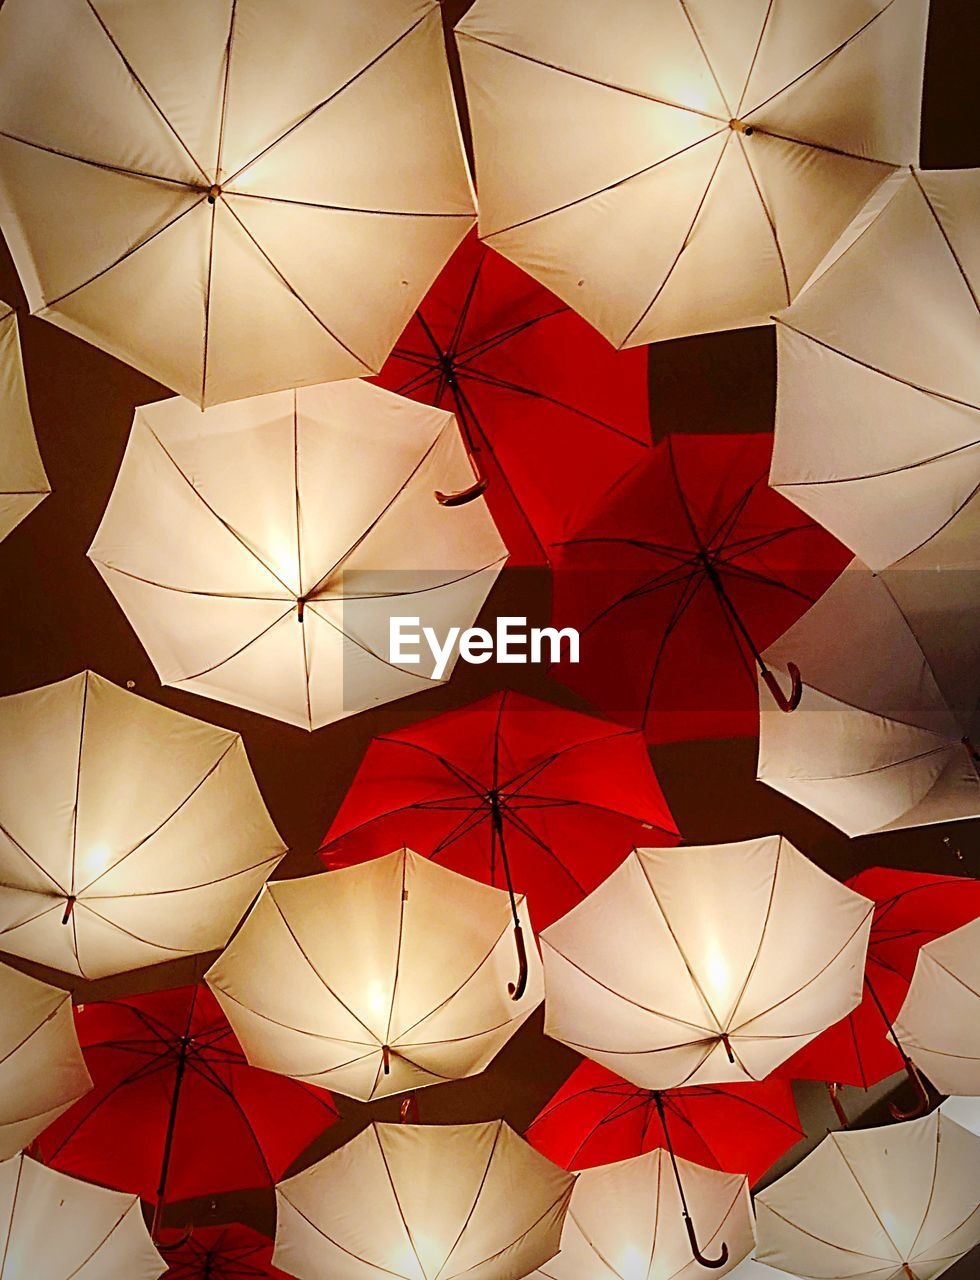 umbrella, full frame, pattern, backgrounds, no people, protection, large group of objects, hanging, design, low angle view, decoration, red, shape, creativity, security, art and craft, choice, indoors, still life, ceiling, directly below